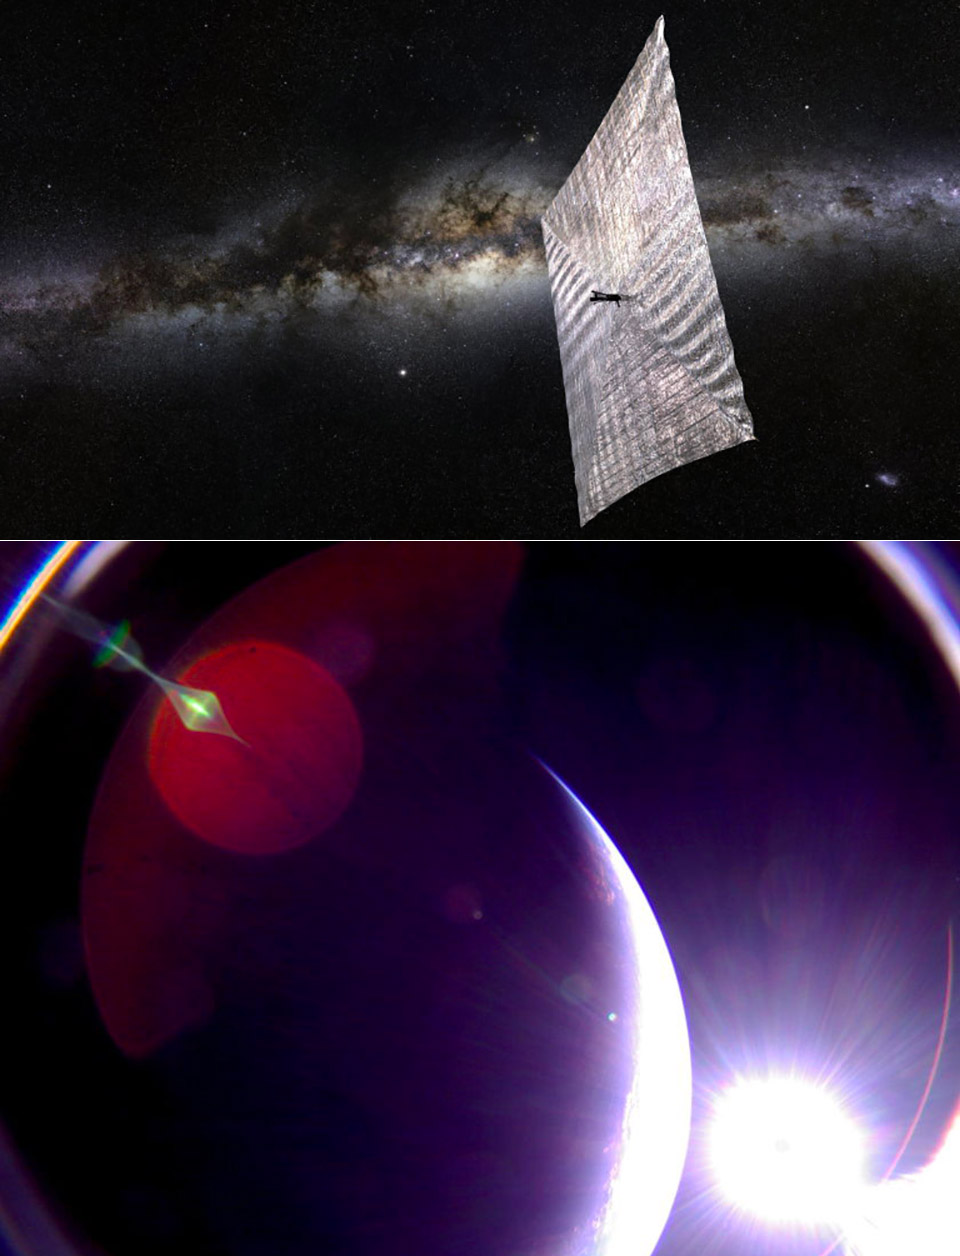 Pictures Captured by LightSail